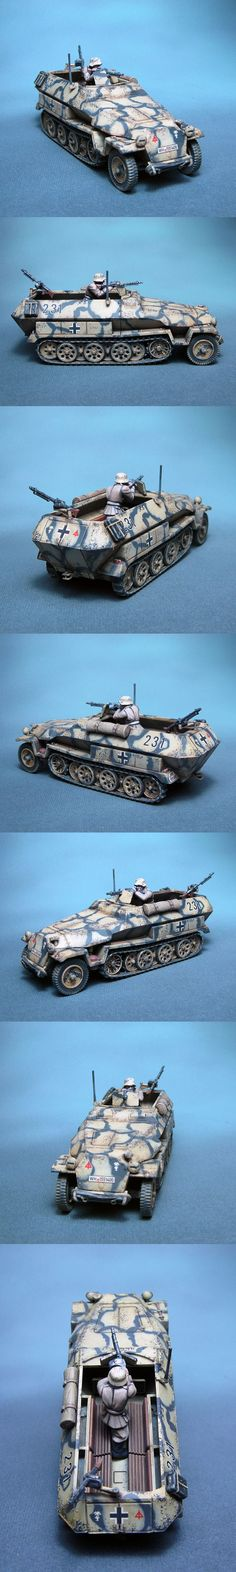 SdKfz 251 Ausf C PzD Afrika Korps Scale: Manufacturer: Warlord… Bolt Action Game, Bolt Action Miniatures, Model Tanks, Military Modelling, Military Diorama, Ww2 Tanks, Military Equipment, Panzer, Armored Vehicles